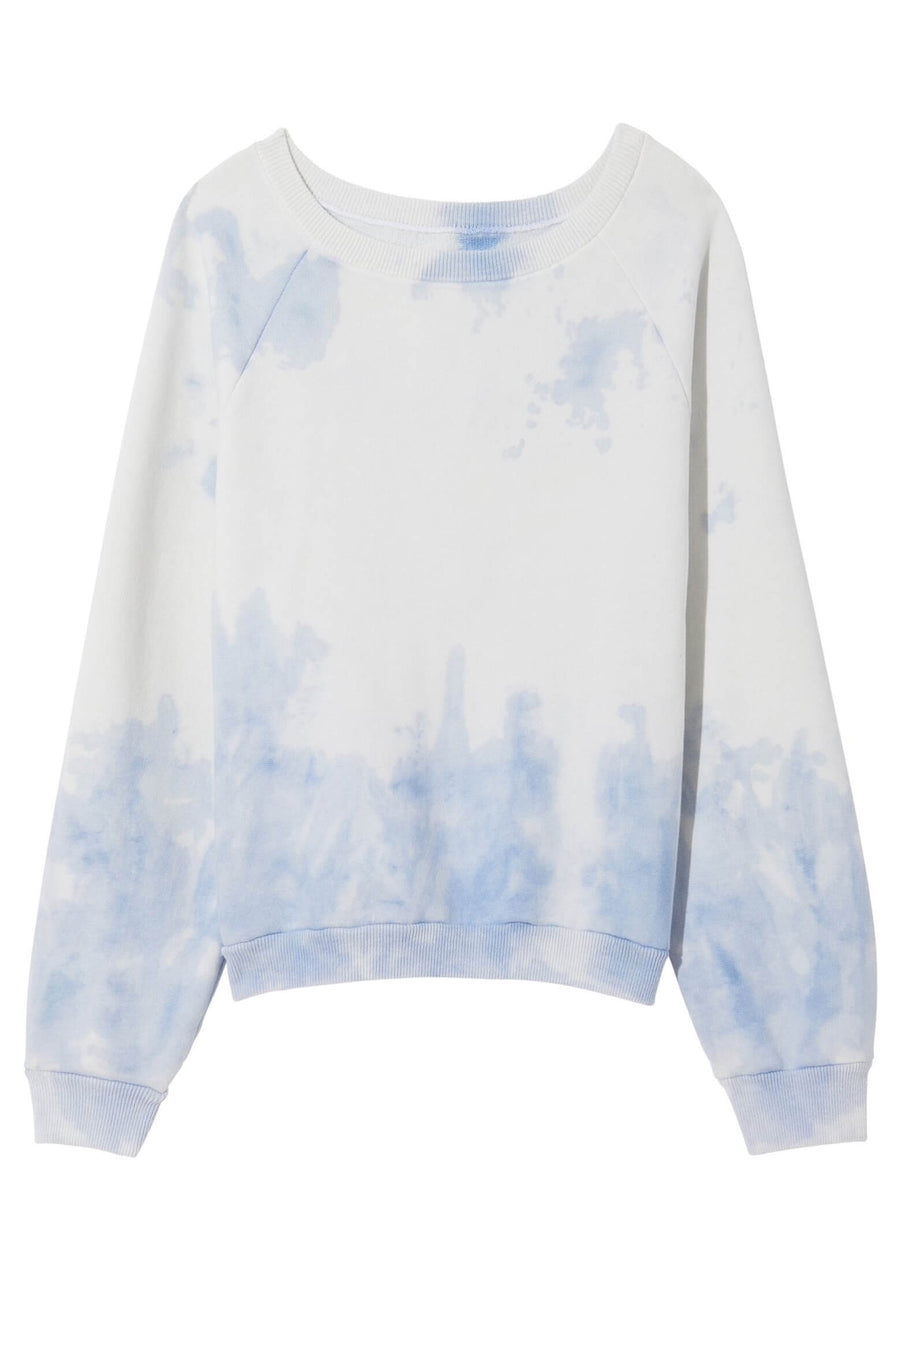 Nili Lotan Classic Crewneck Sweatshirt in Blue Tie Dye from The New Trend